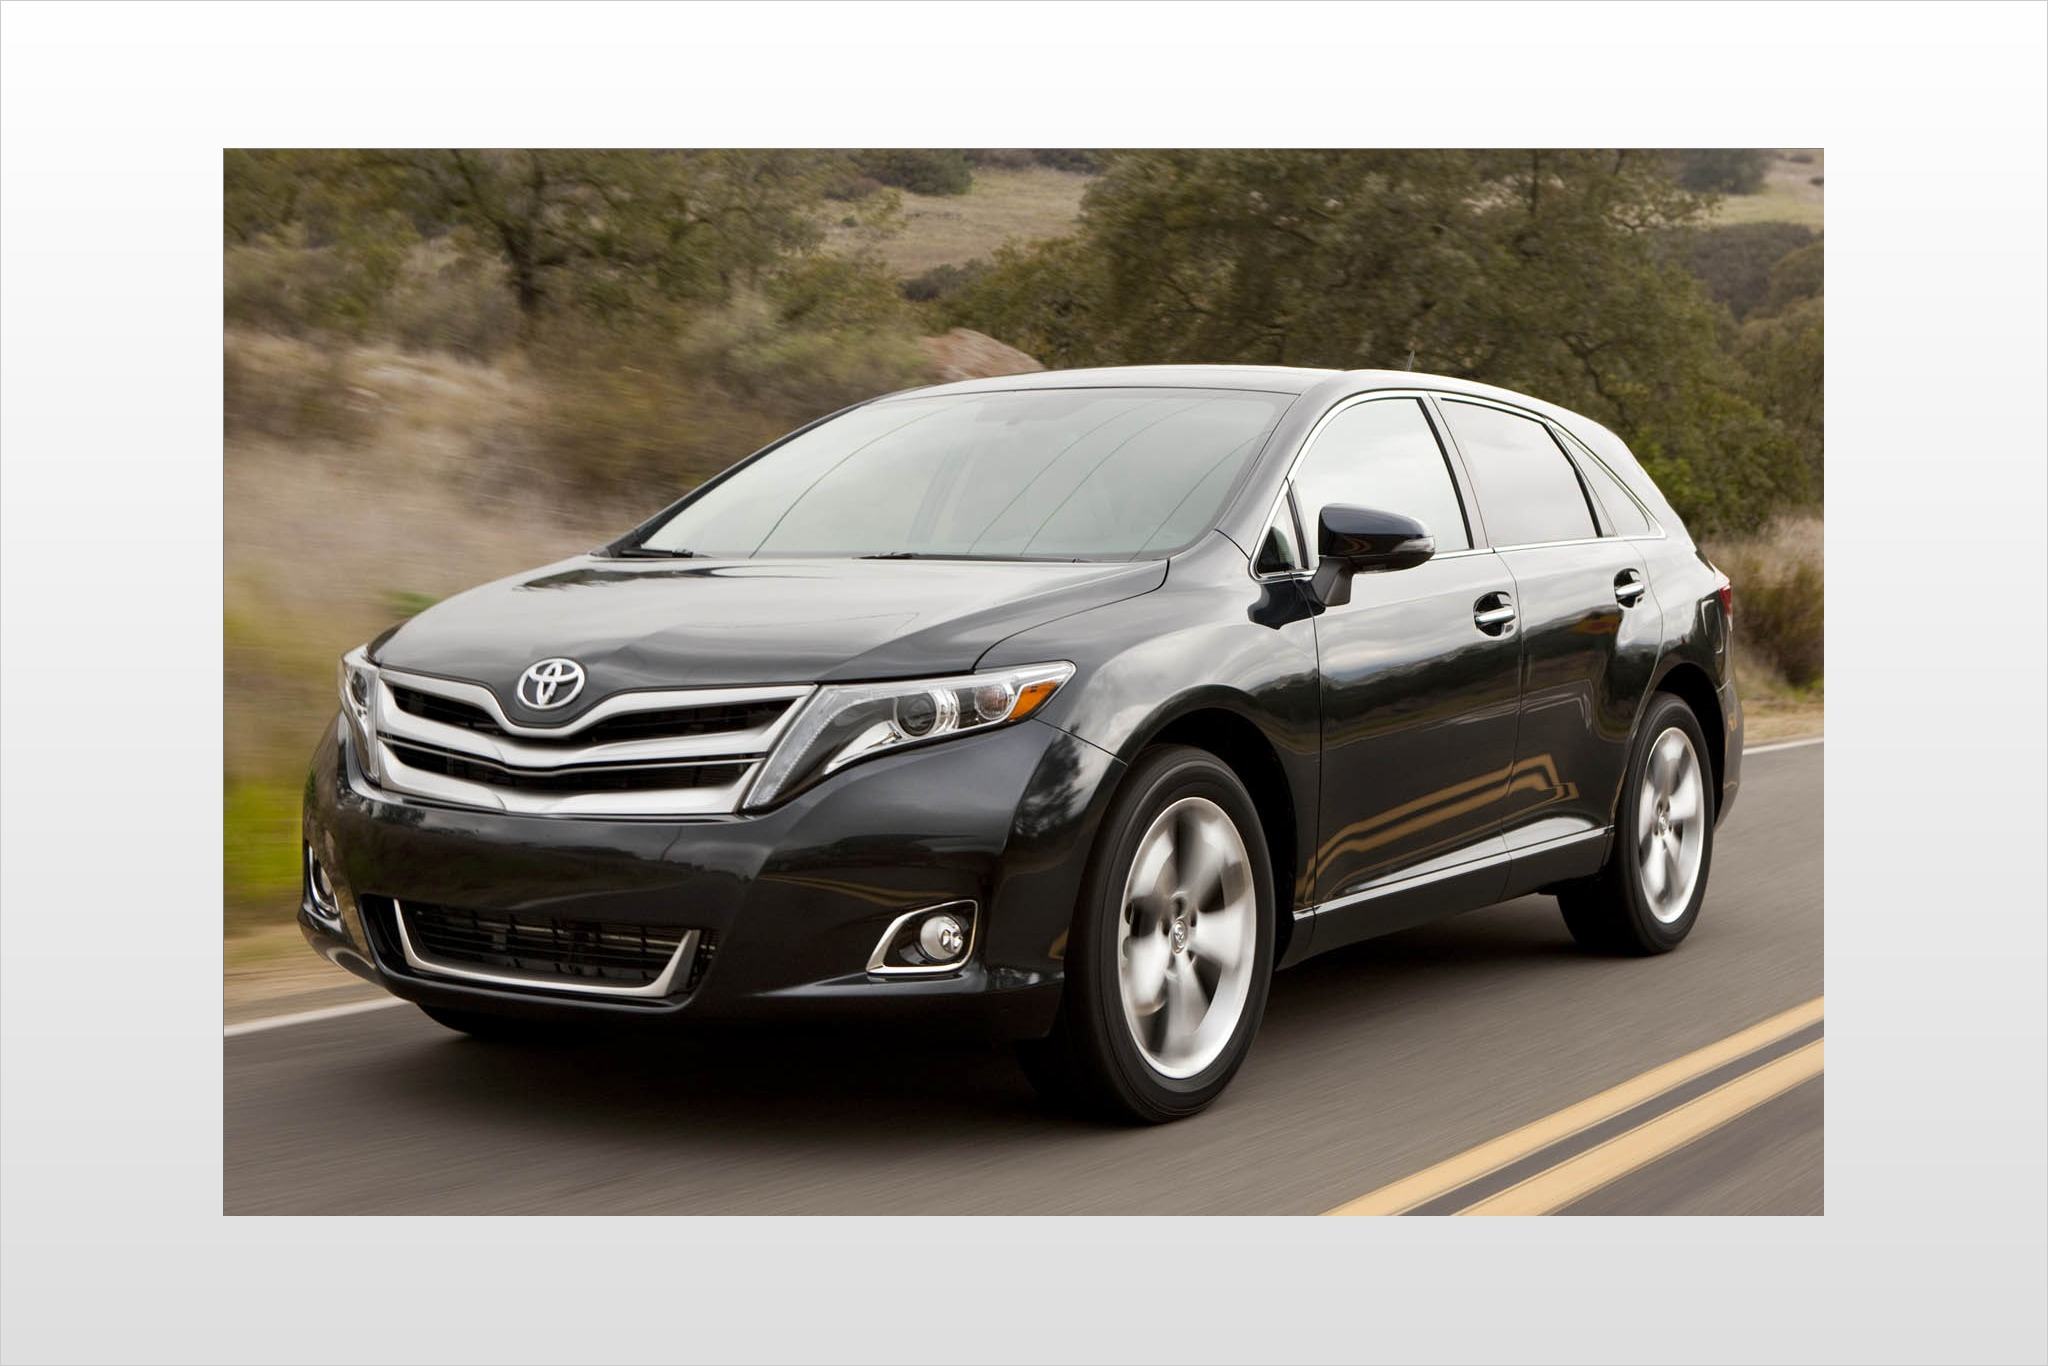 2013 Toyota Venza Limited exterior #5